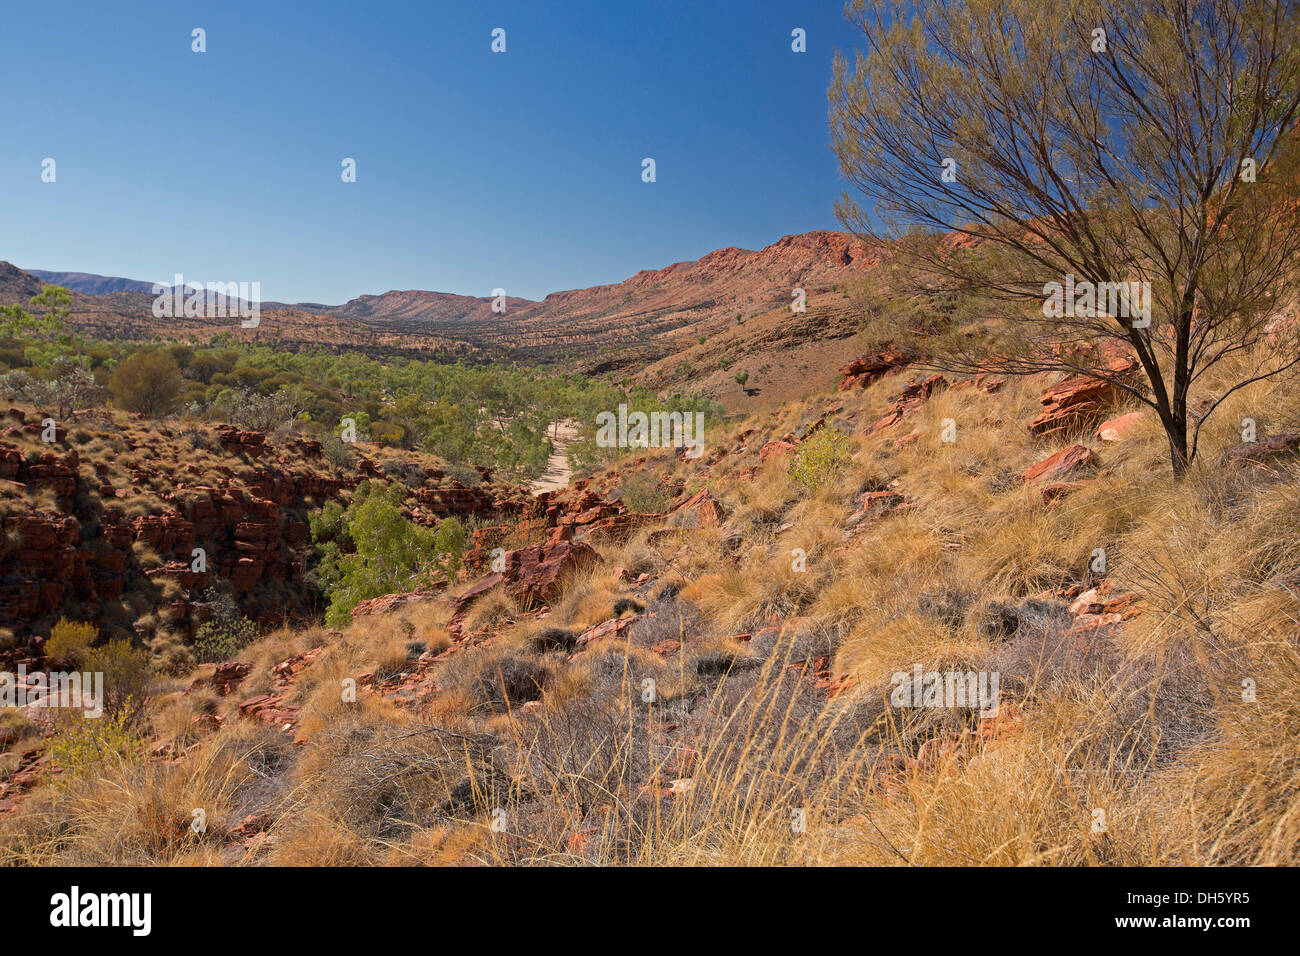 Outback landscape of high rocky cliffs, sandy riverbed, ranges in Trephina gorge nature reserve near Alice Springs NT Australia - Stock Image